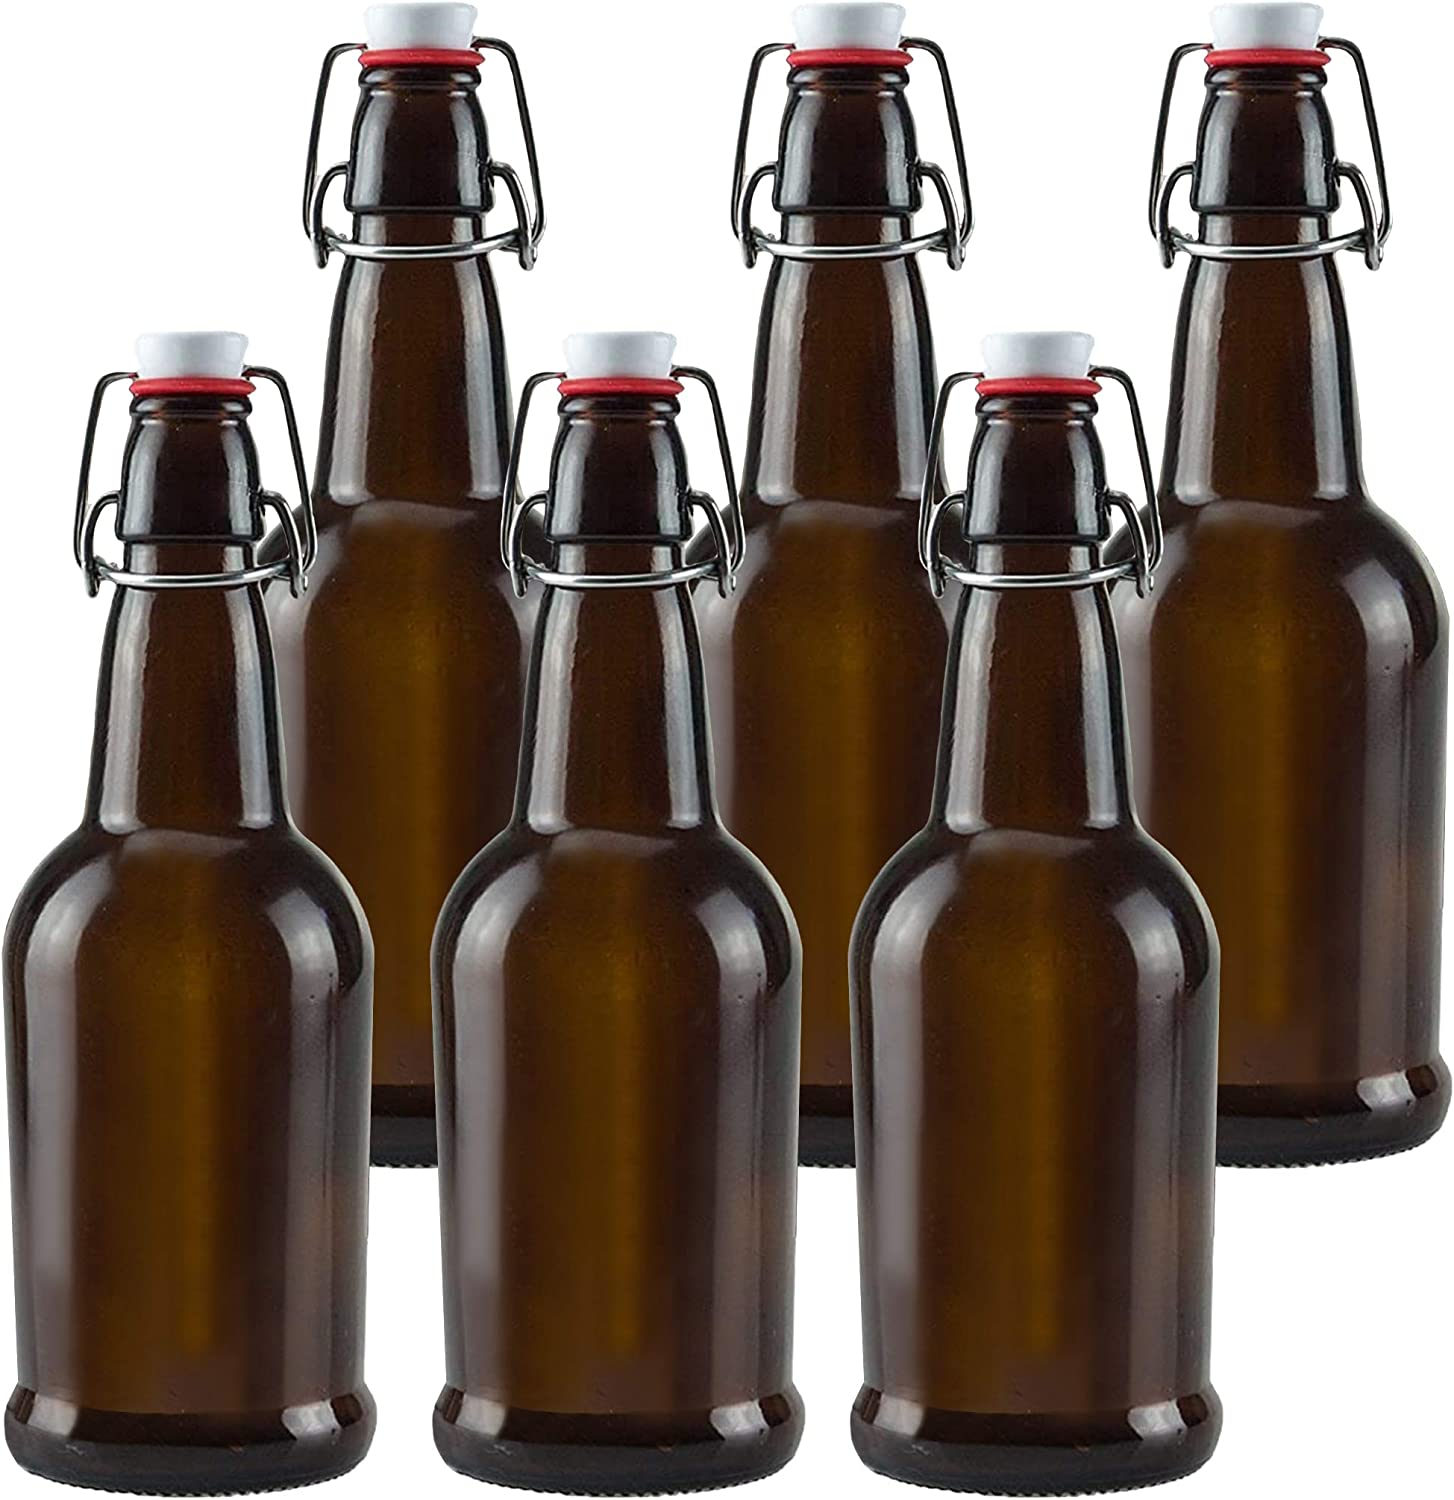 Glass Bottles with Swing Top Lids, Amber Glass Bottles for Home Brewing, Kombucha, Beer, and Other Liquor, 6 Pack by Chef's Star